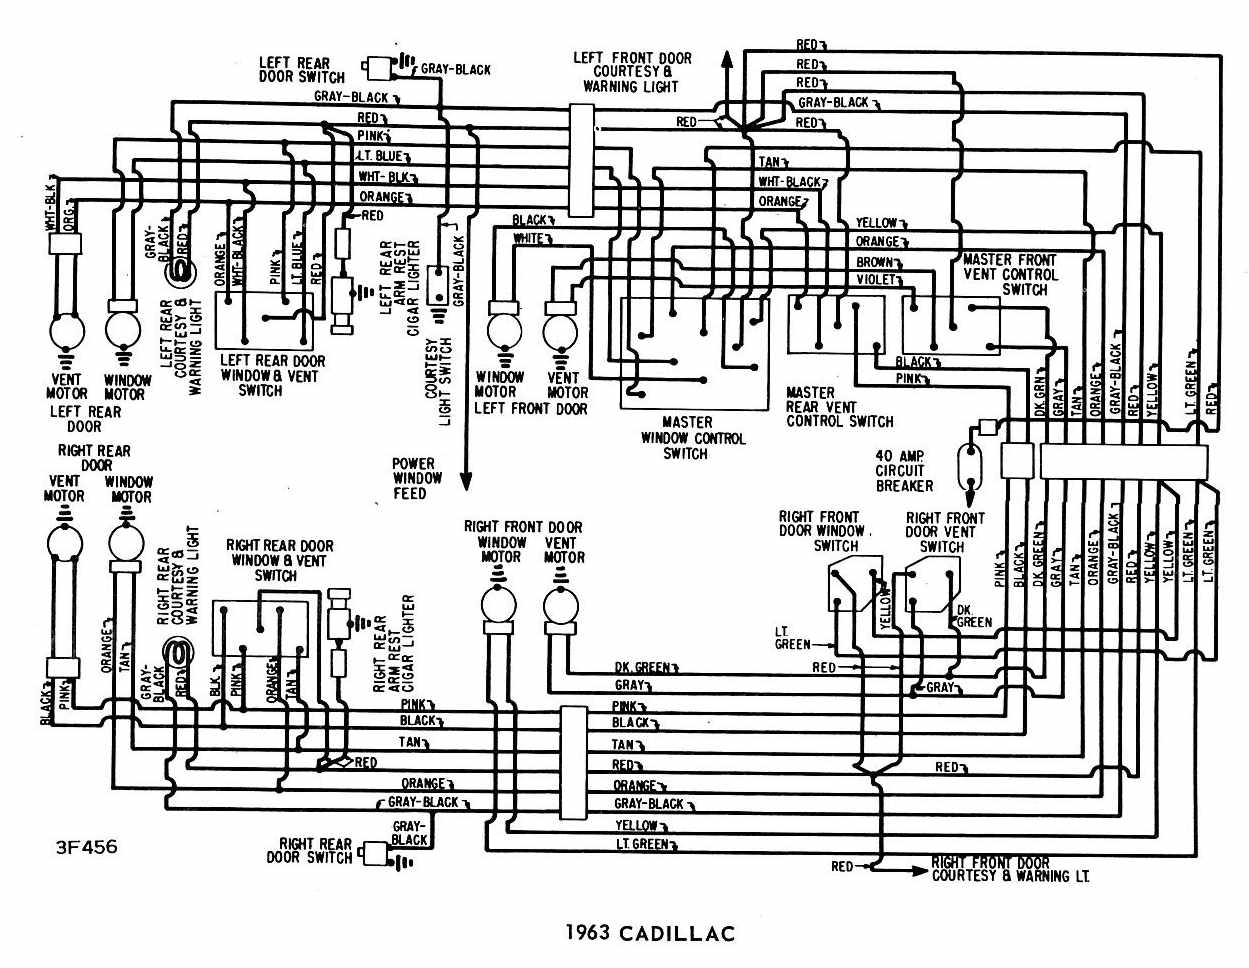 Cadillac 1963 Windows Wiring Diagram on 1950 buick wiring diagram